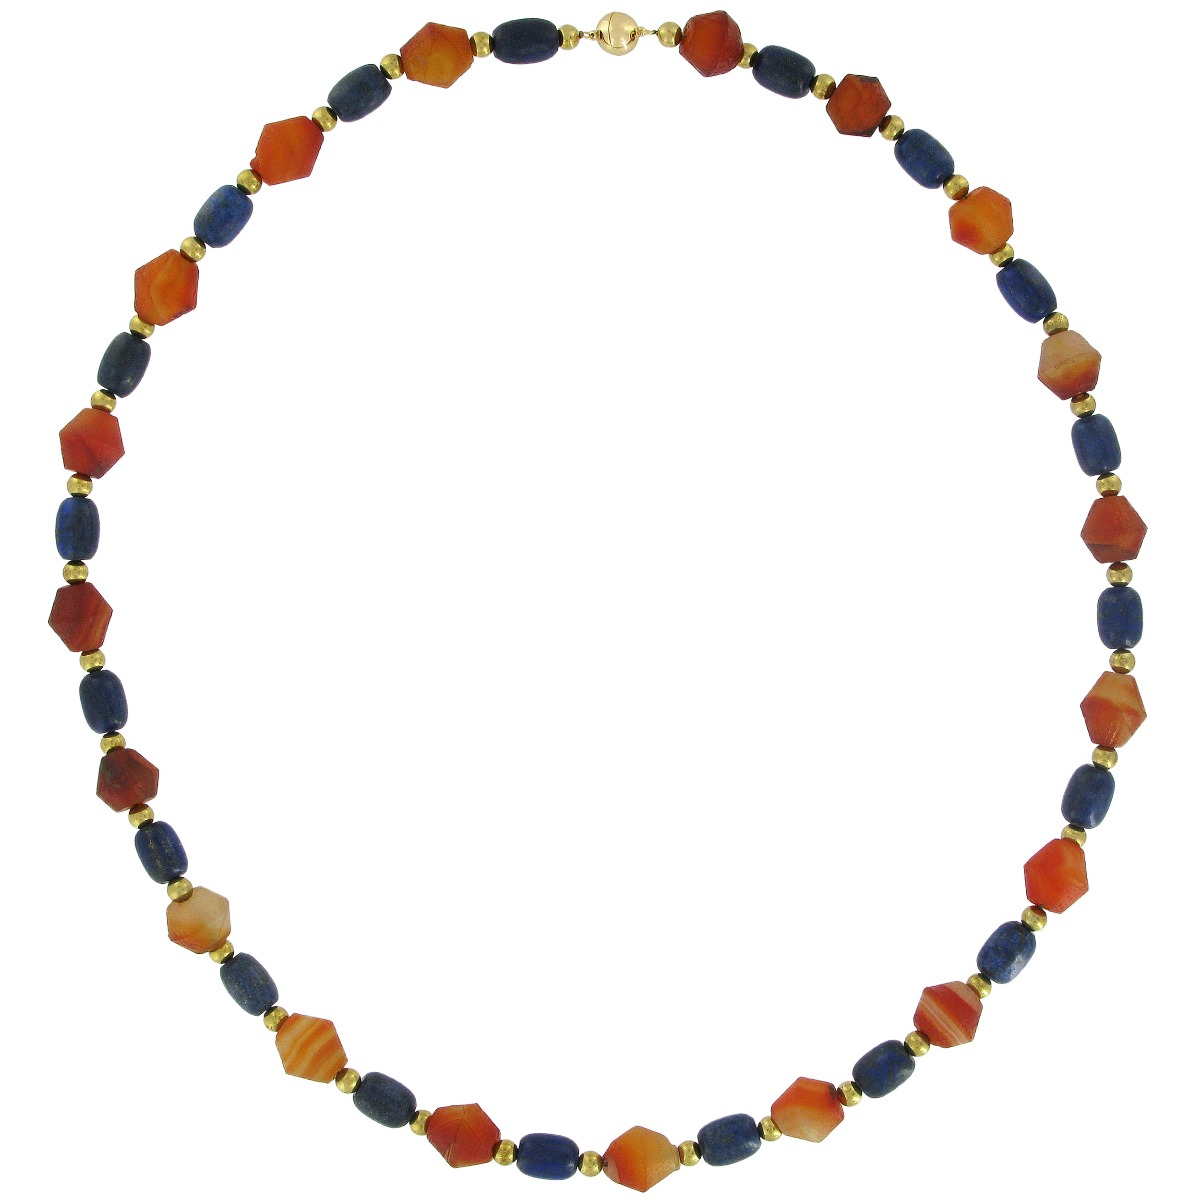 Lapis lazuli and agate necklace  (long)